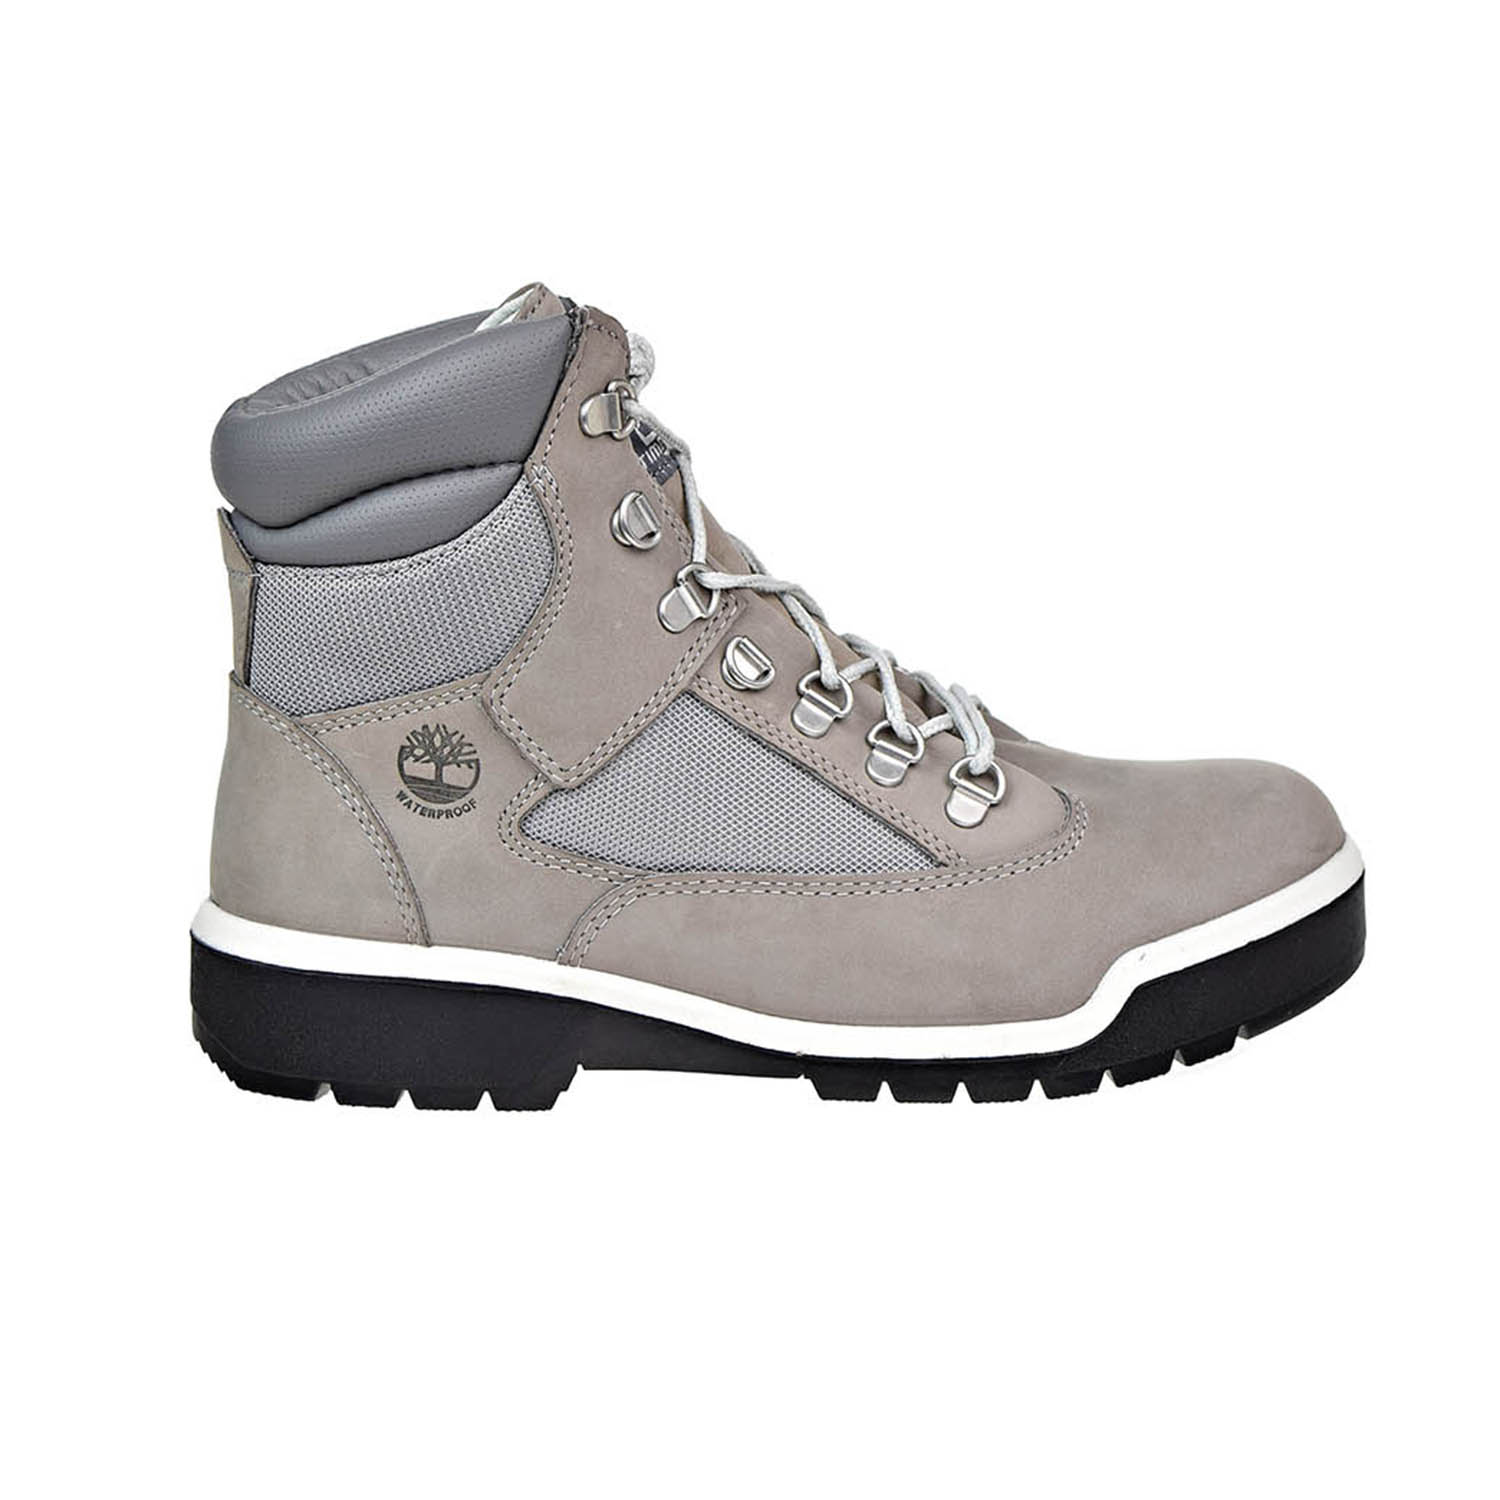 Timberland 6 Inch Field Boot Waterproof Men's Grey tb0a1jpj by Timberland